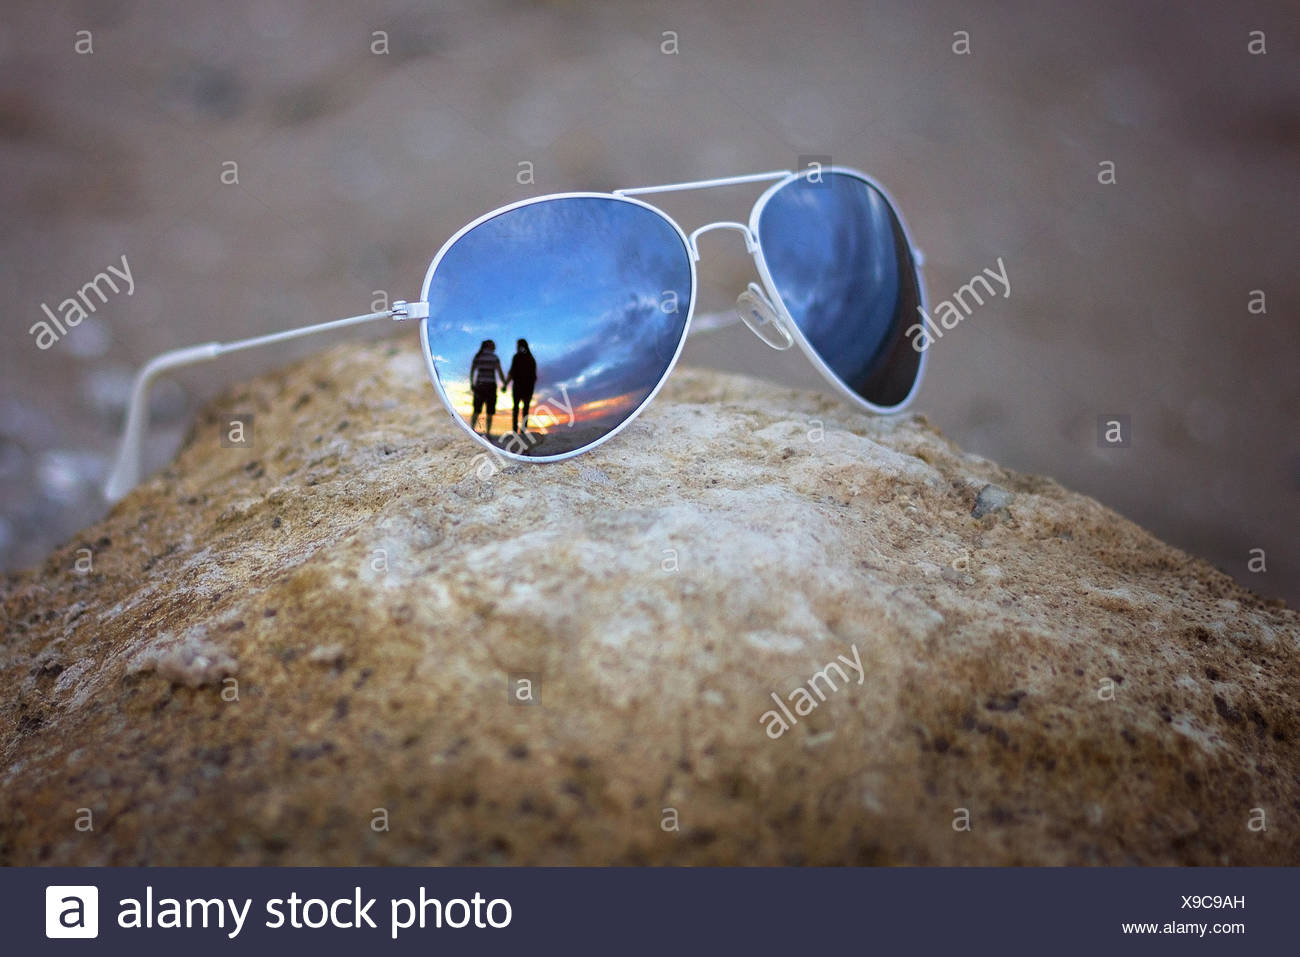 Reflection of couple in sunglasses - Stock Image